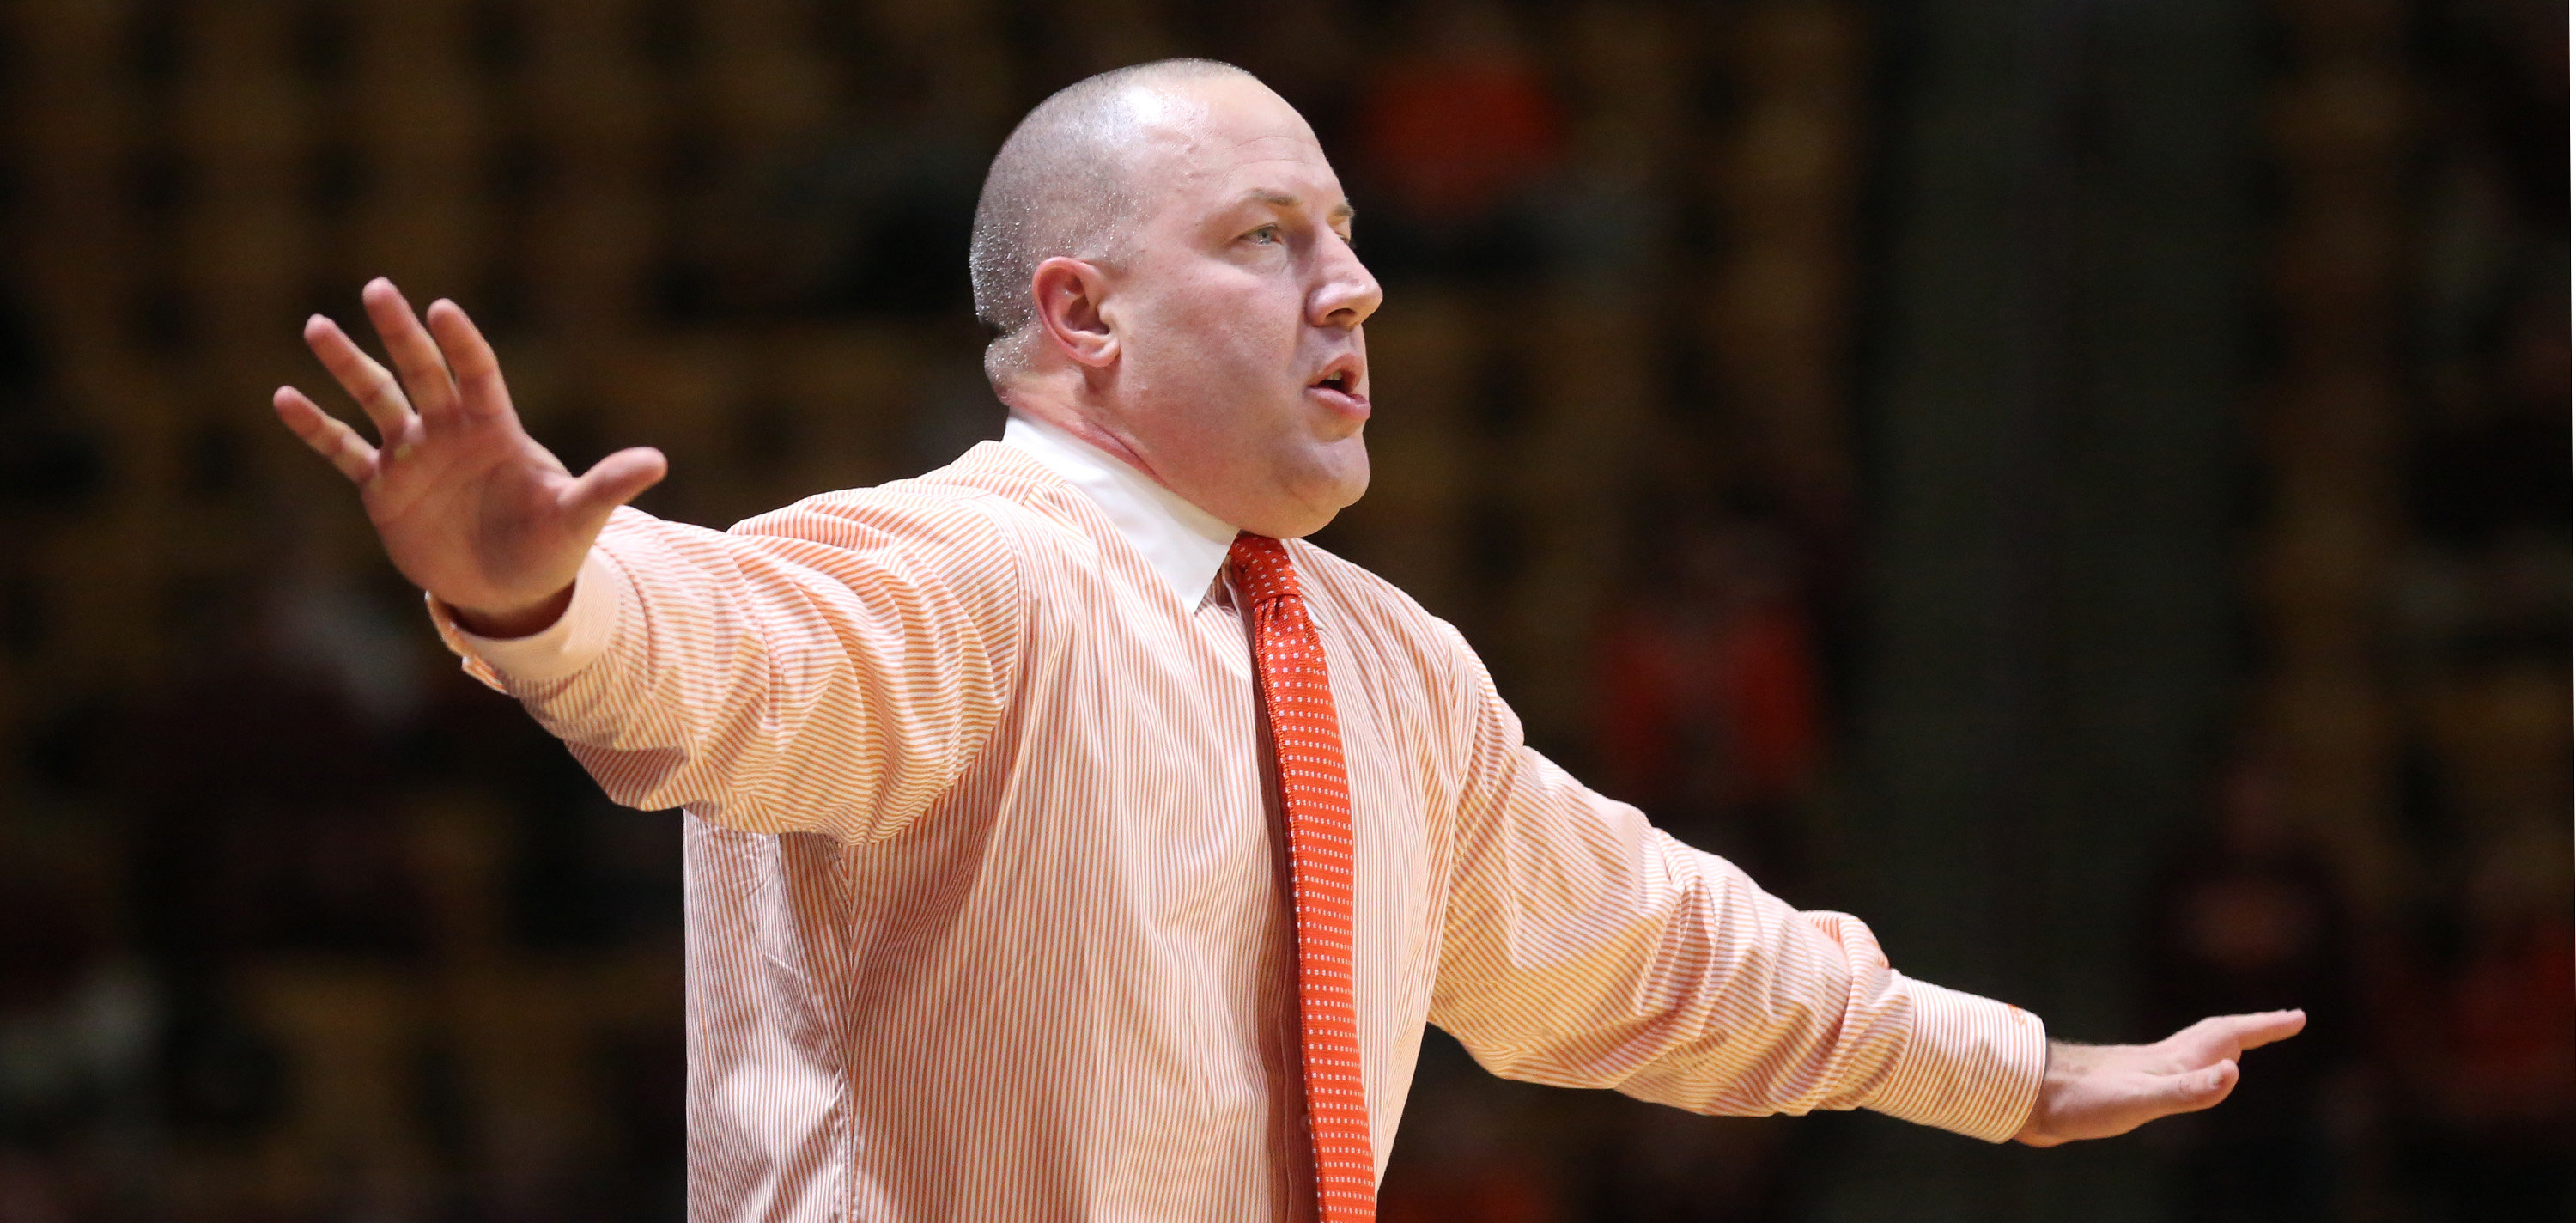 Virginia Tech head coach Buzz Williams coaches from the sideline in the first half of an NCAA college basketball game against North Carolina State in Blacksburg, Va., Saturday, Jan. 2, 2016. (Matt Gentry /The Roanoke Times via AP) LOCAL TELEVISION OUT; SA